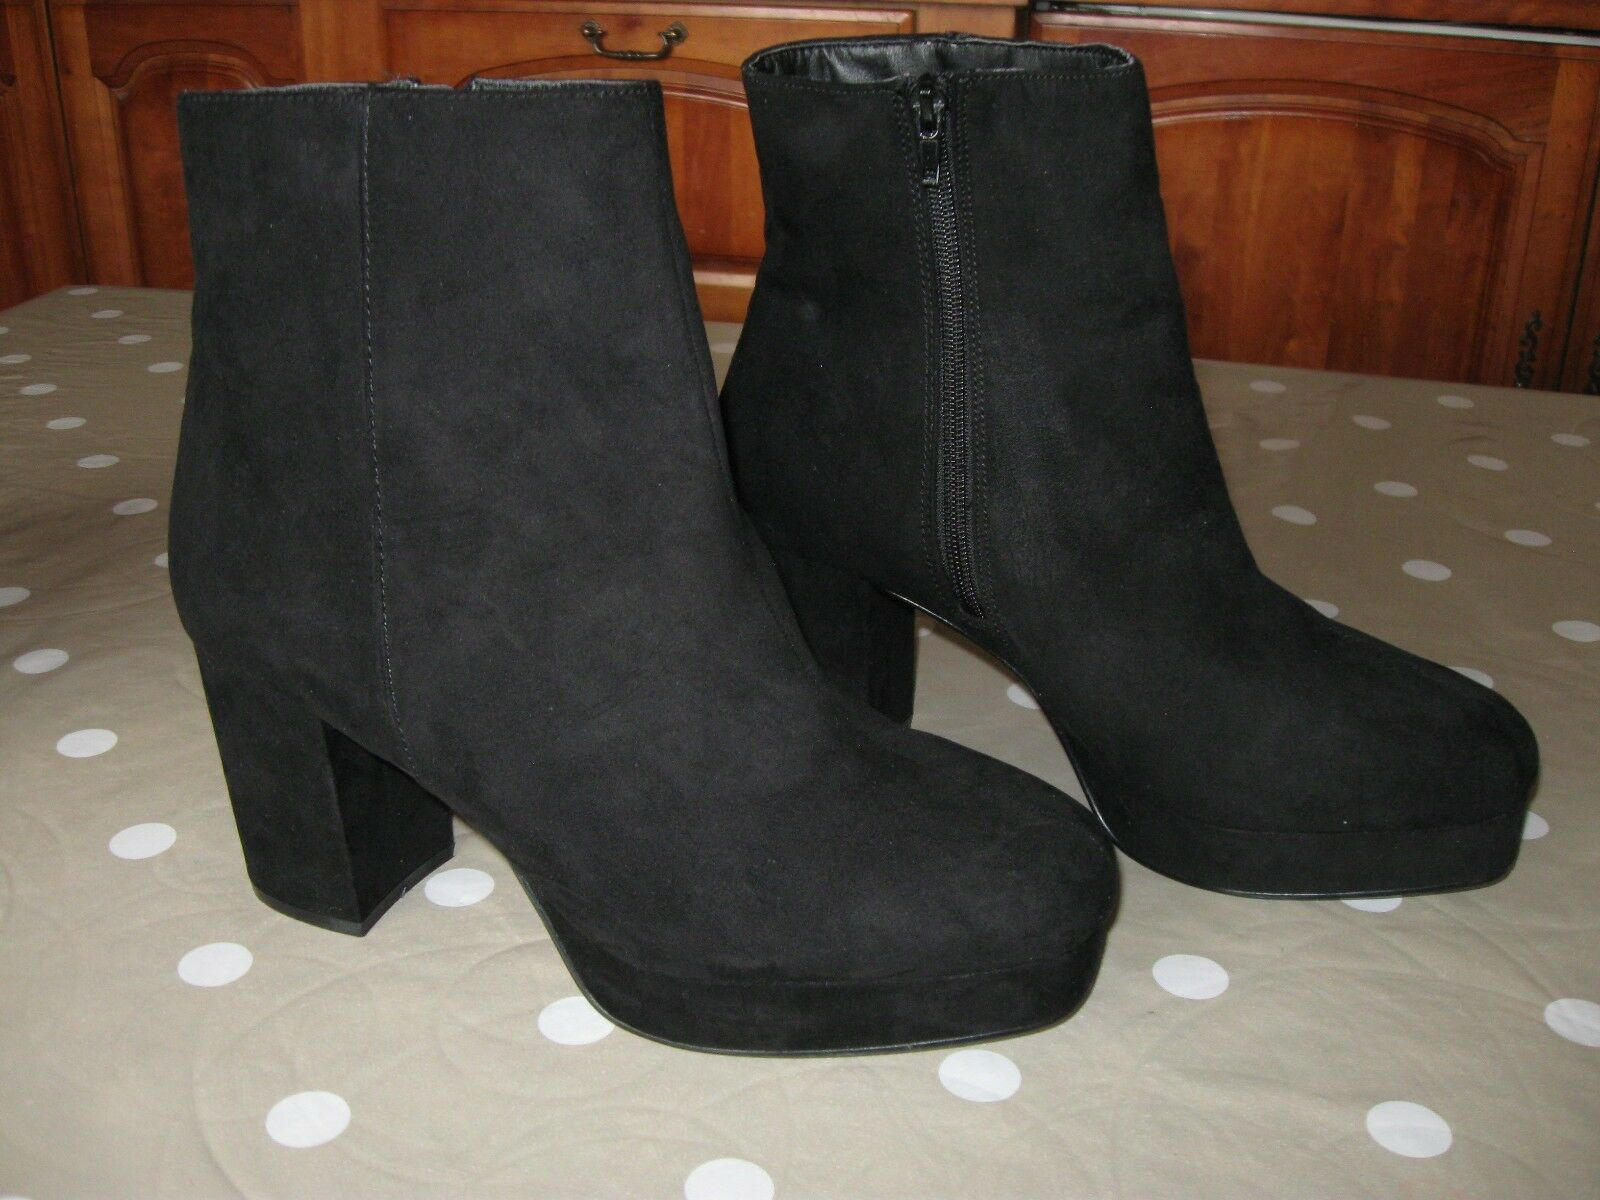 UK Size 8 Black Suede Effect Ankle Boots Brand New Without Box